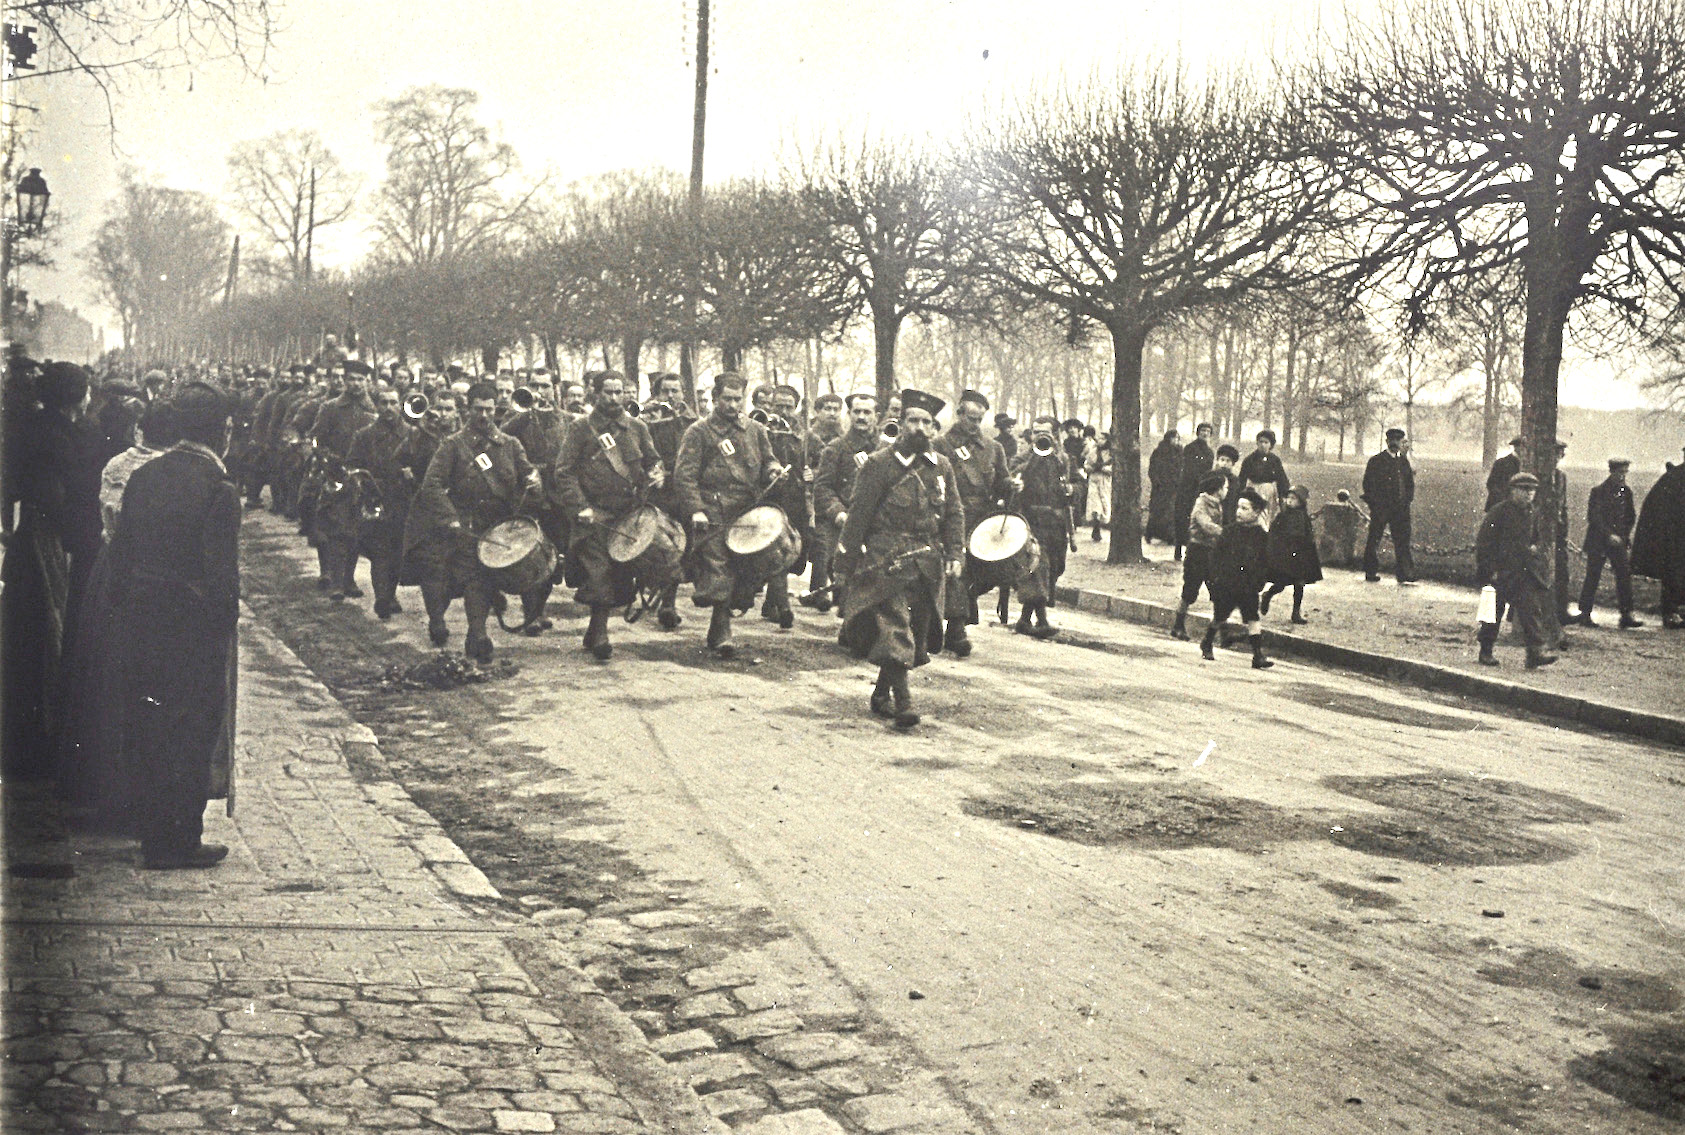 French Soldiers marching down down the Rue d'Aumale in Chantilly during late 1914. Photo provided by Sarah Gillois, who is responsible for history and culture at the town council